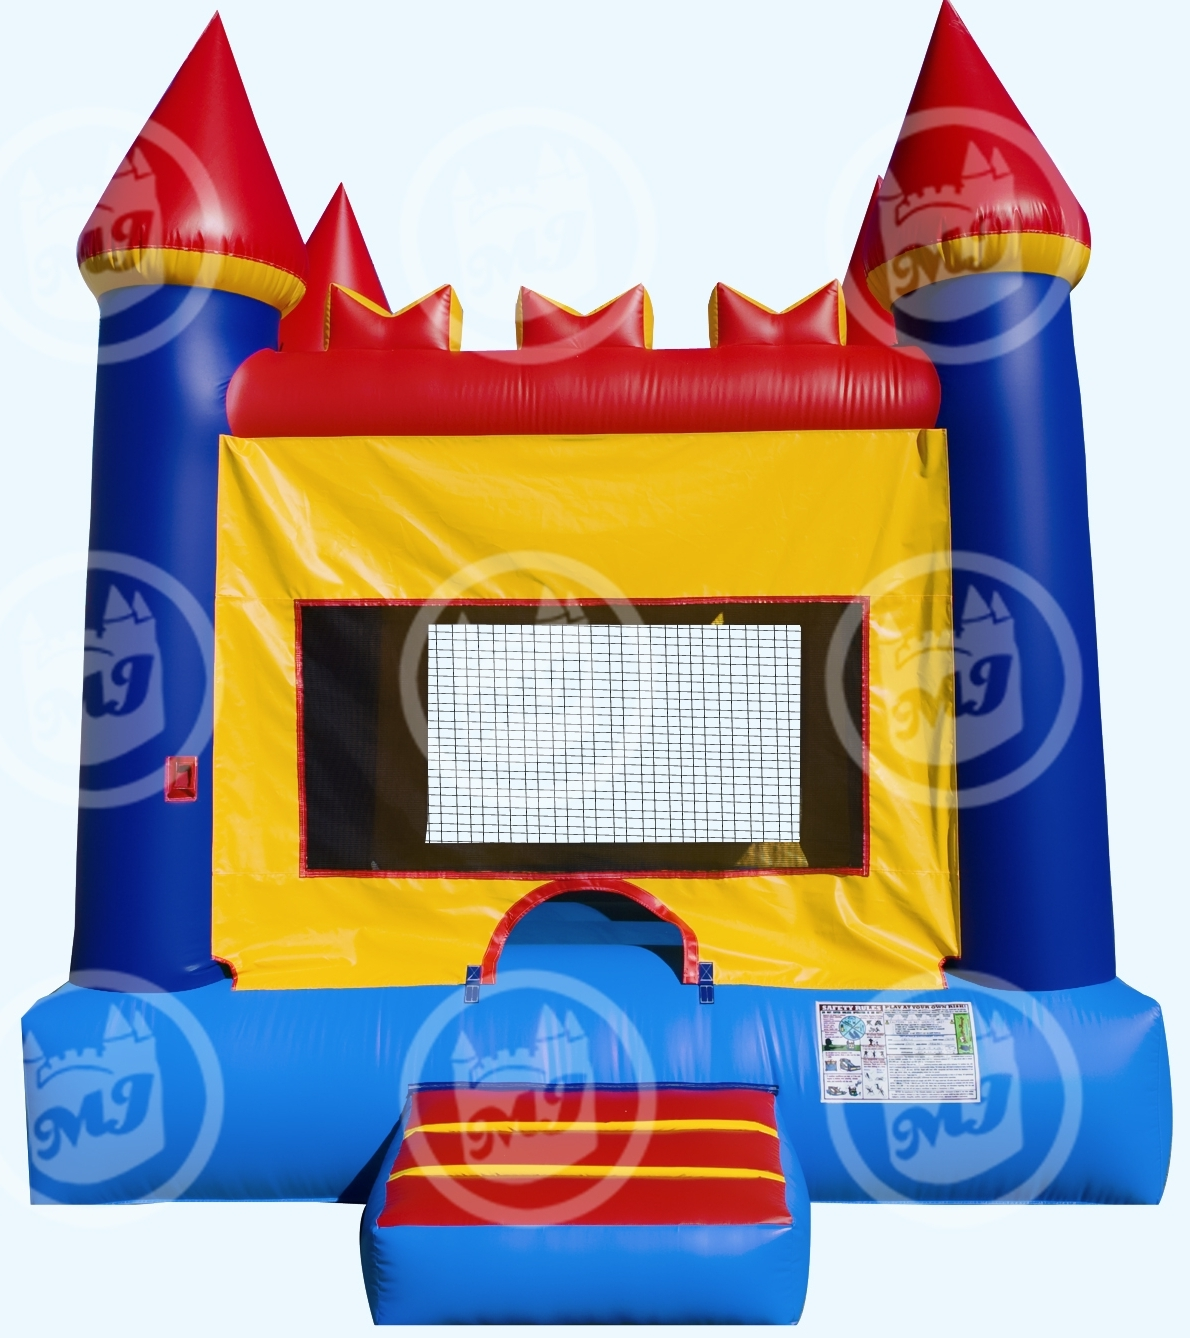 Rockland County Bounce House